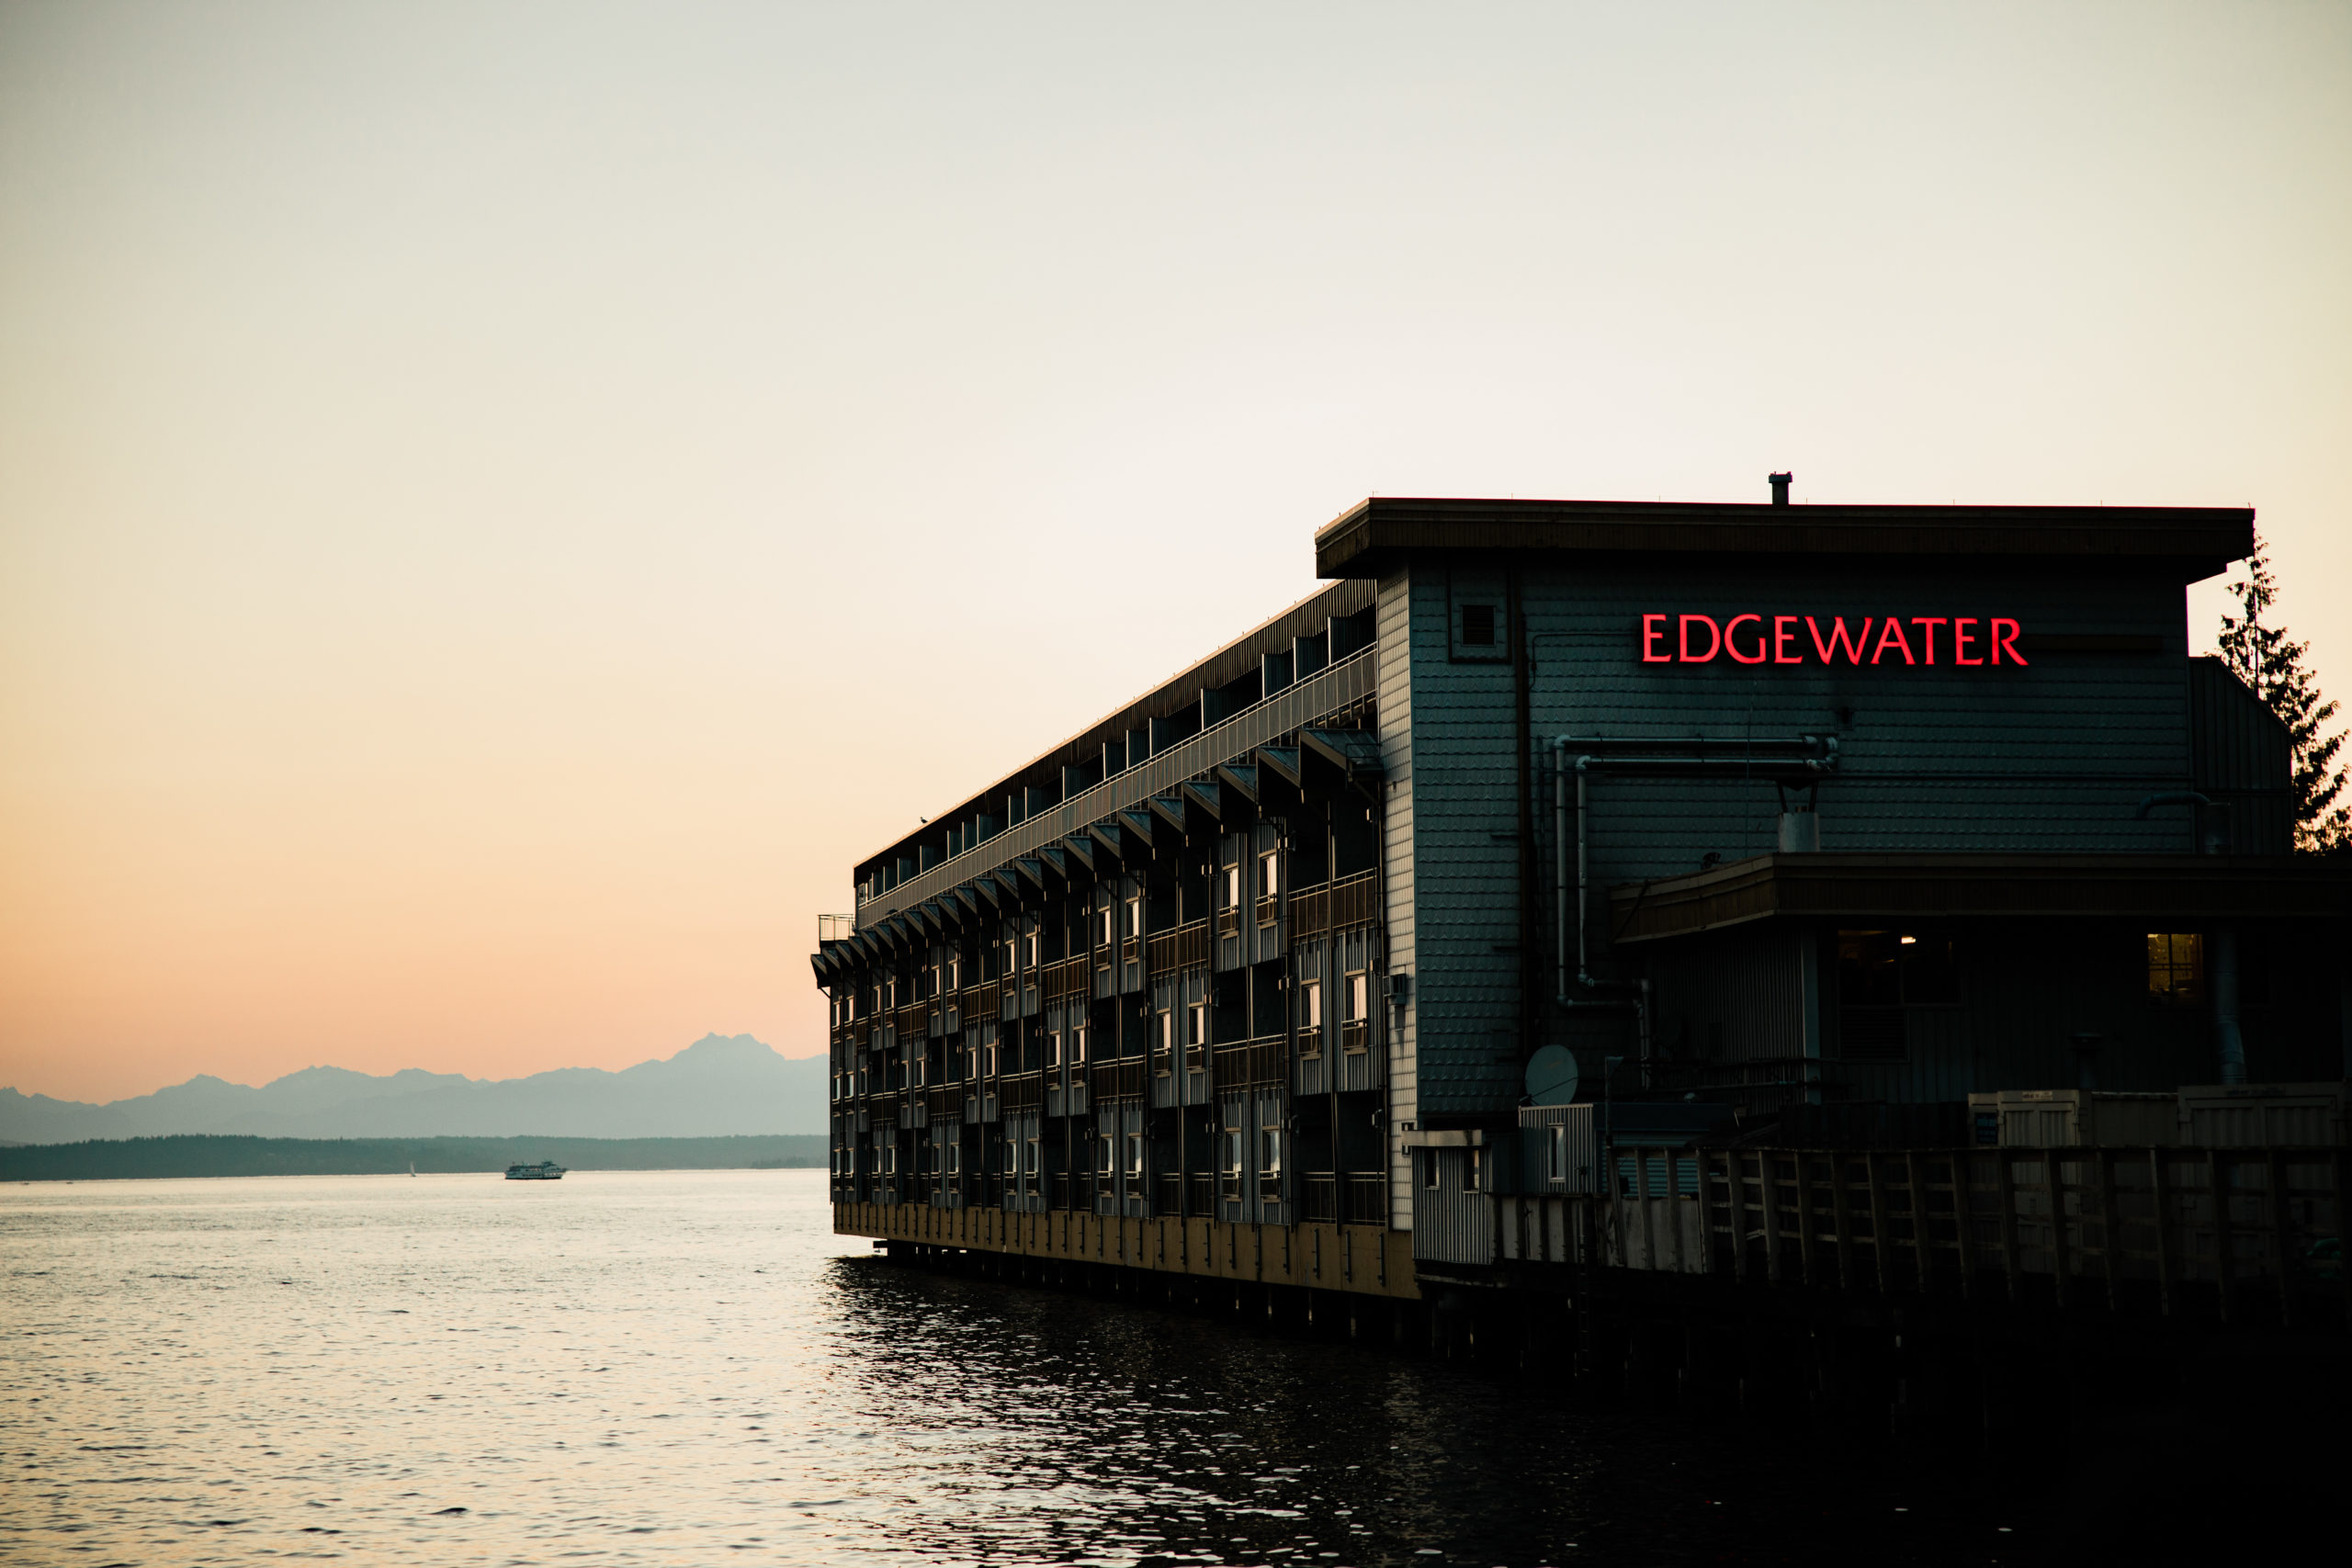 Waterfront wedding venue in downtown seattle, the edgewater hotel